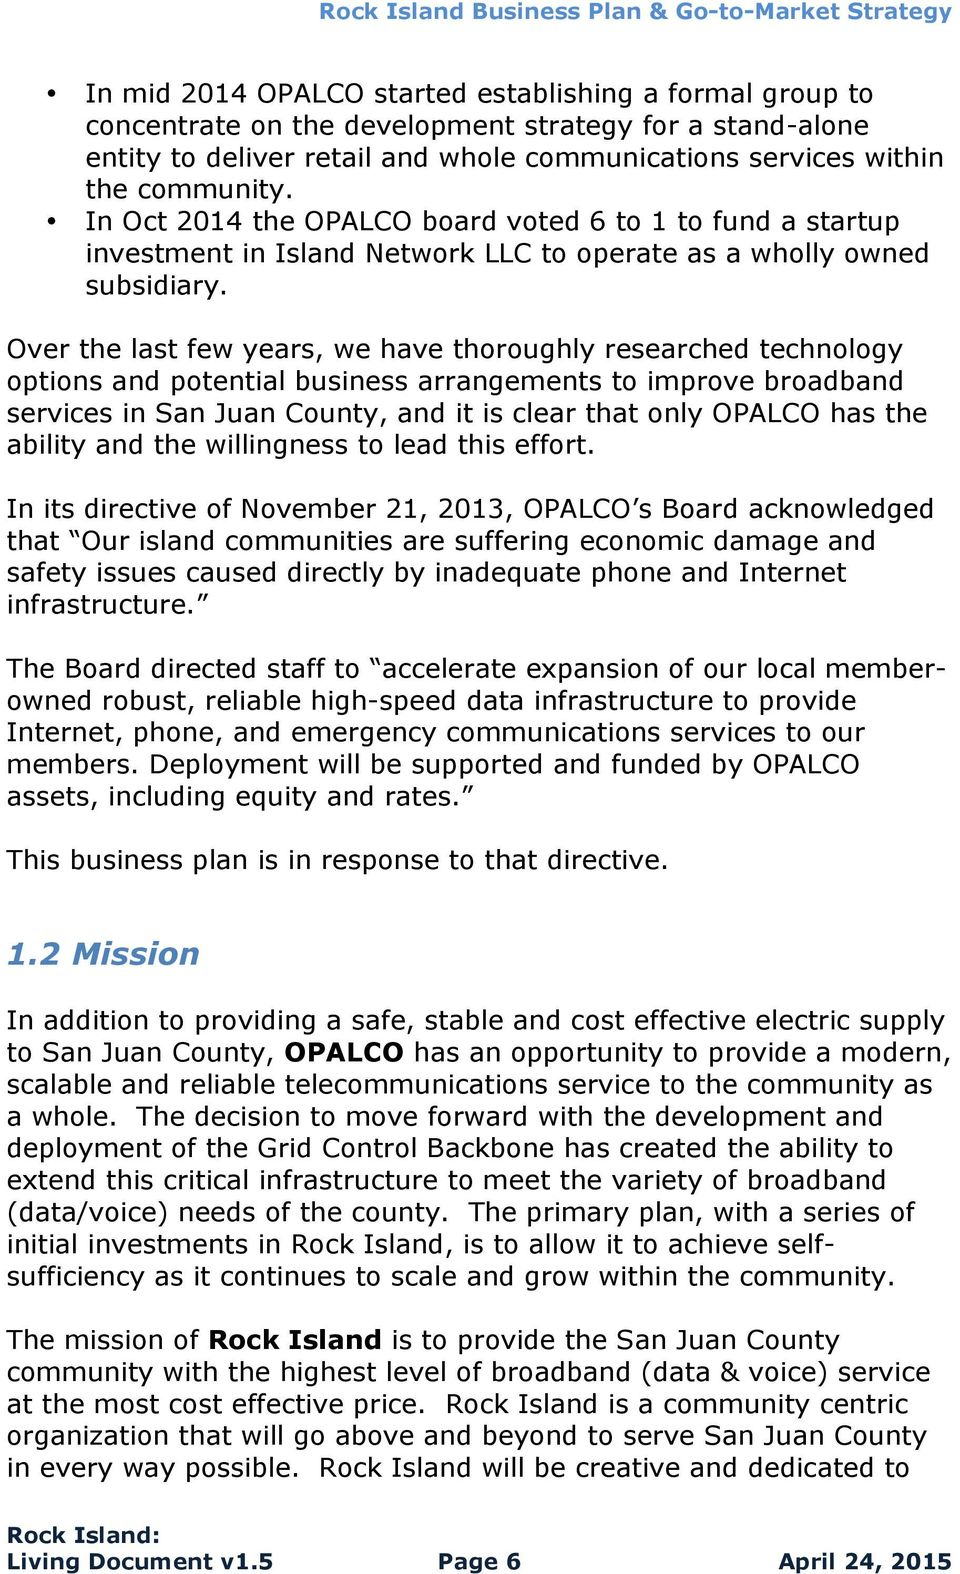 Over the last few years, we have thoroughly researched technology options and potential business arrangements to improve broadband services in San Juan County, and it is clear that only OPALCO has